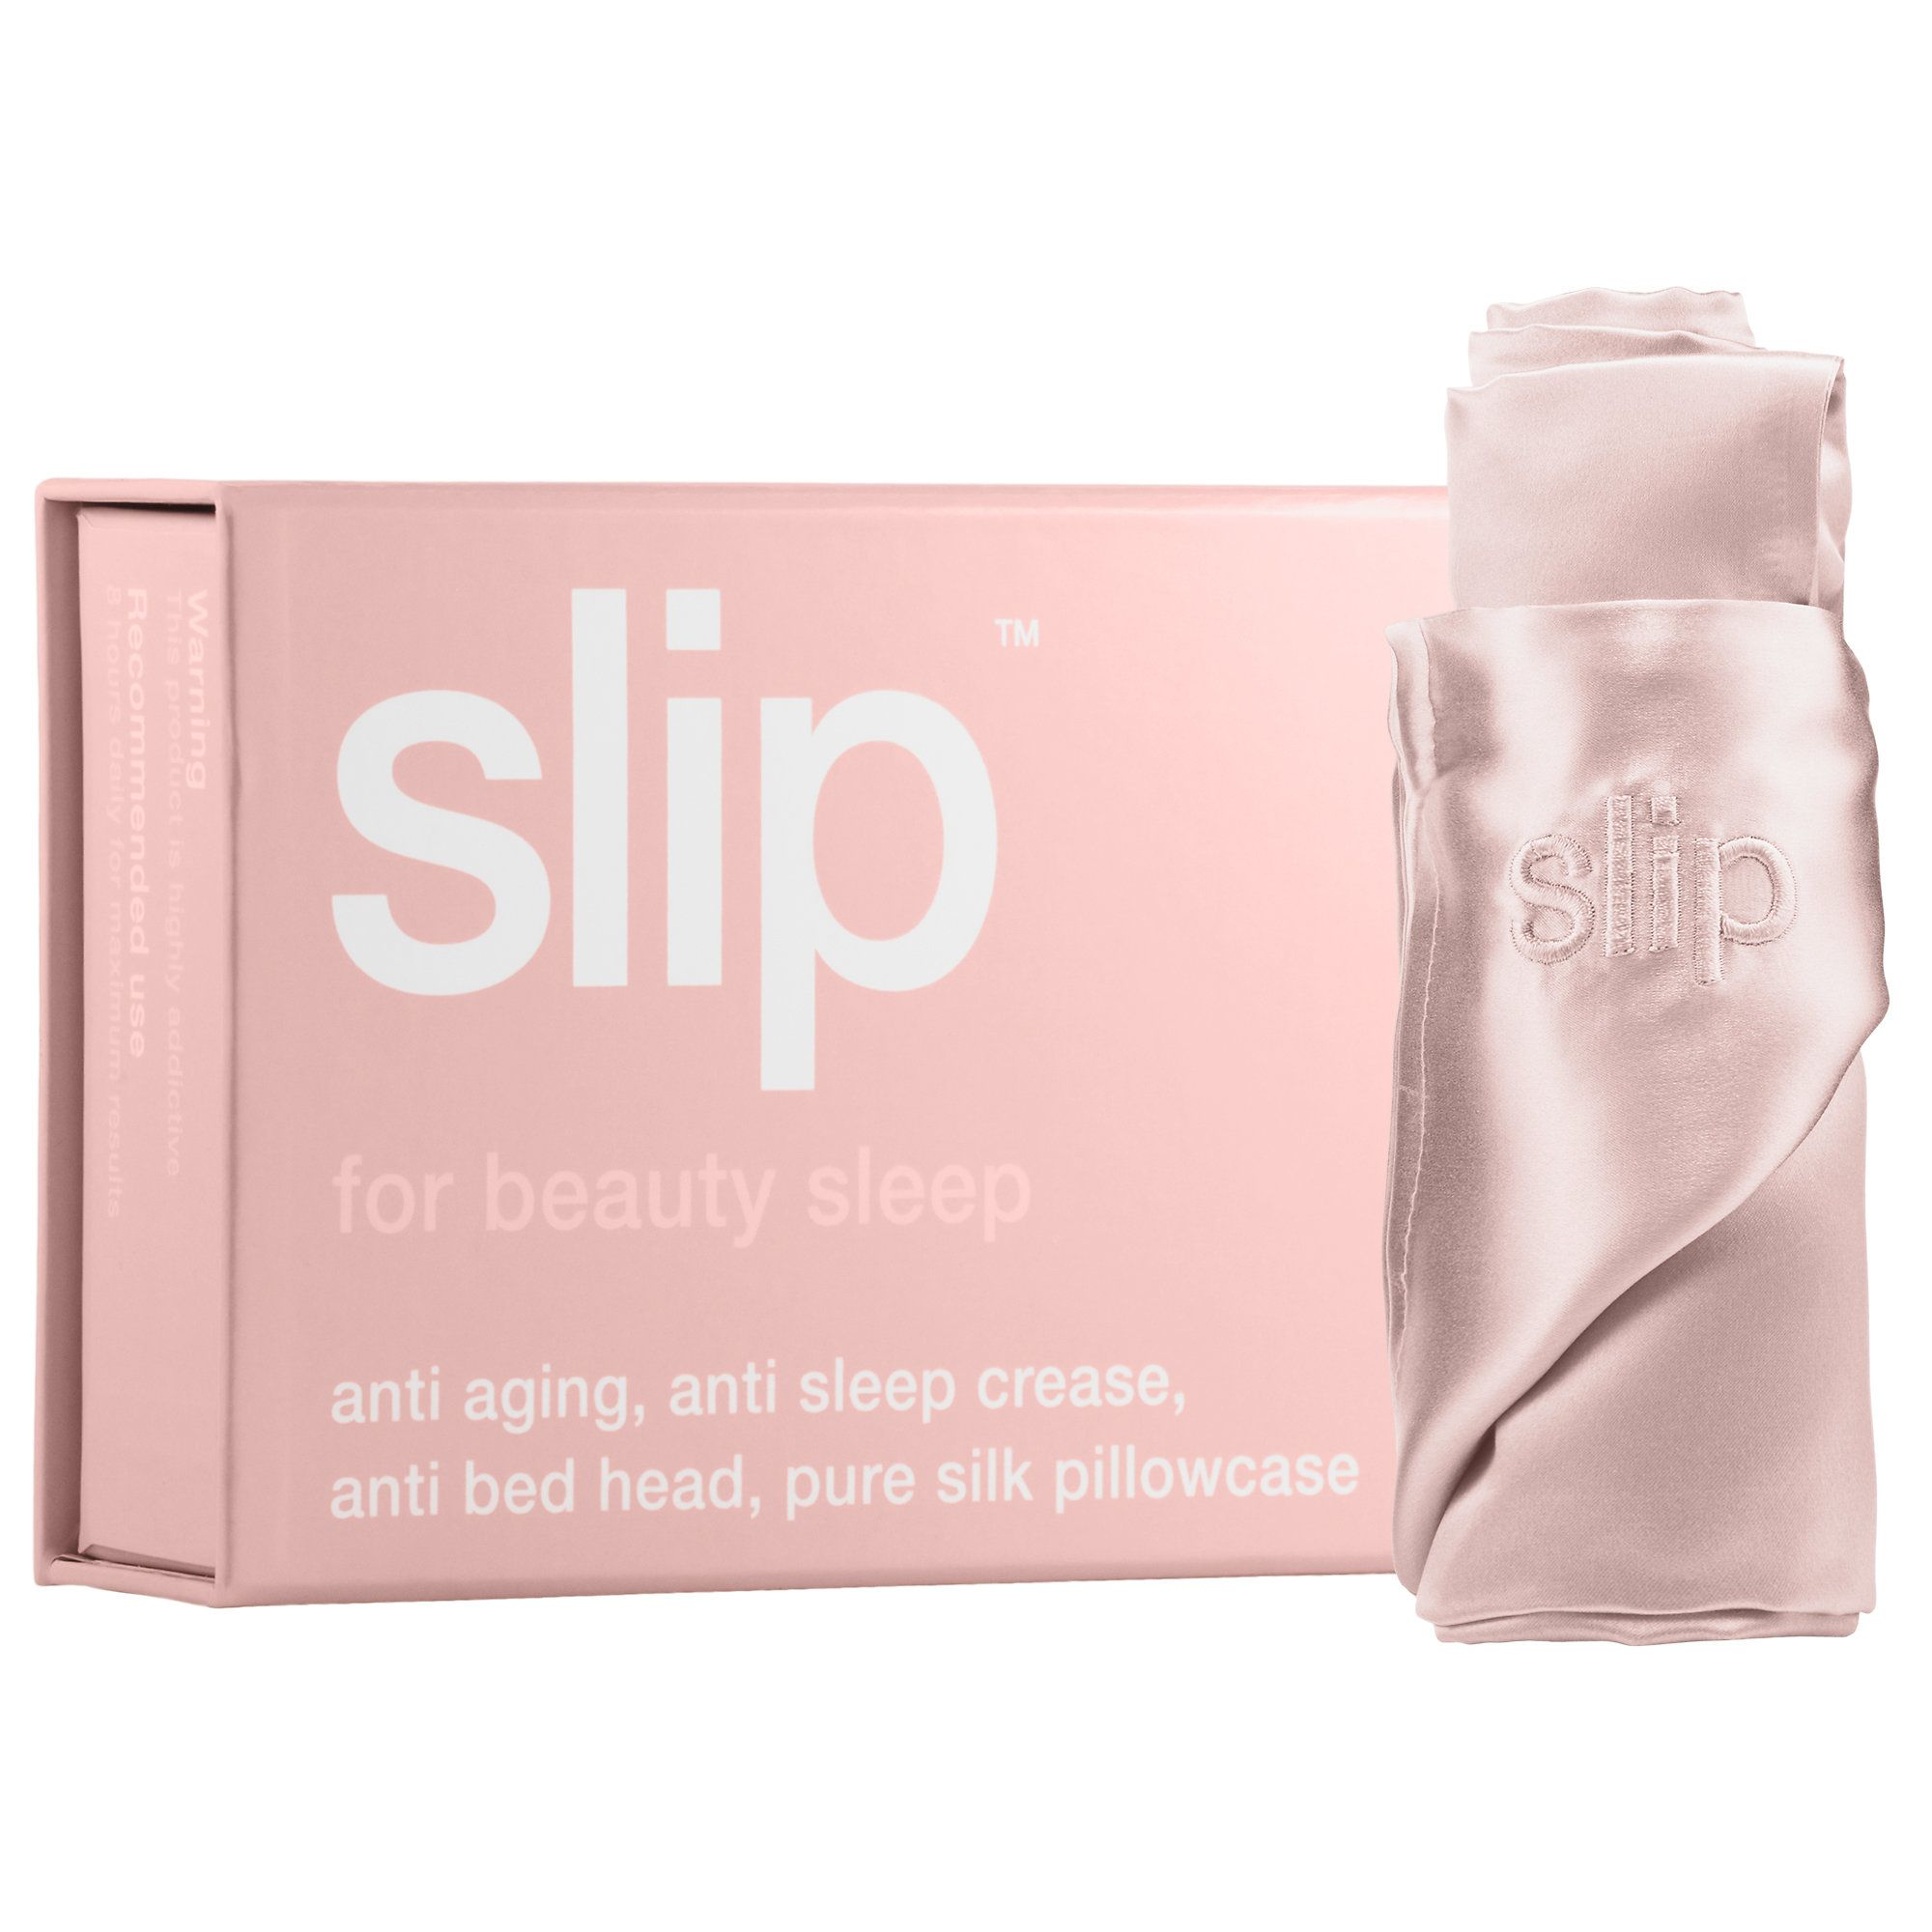 Slip Pillowcase Review Enchanting Shop Slip Beauty's Queen Silk Pillowcase At Sephorathe Antiaging Design Decoration